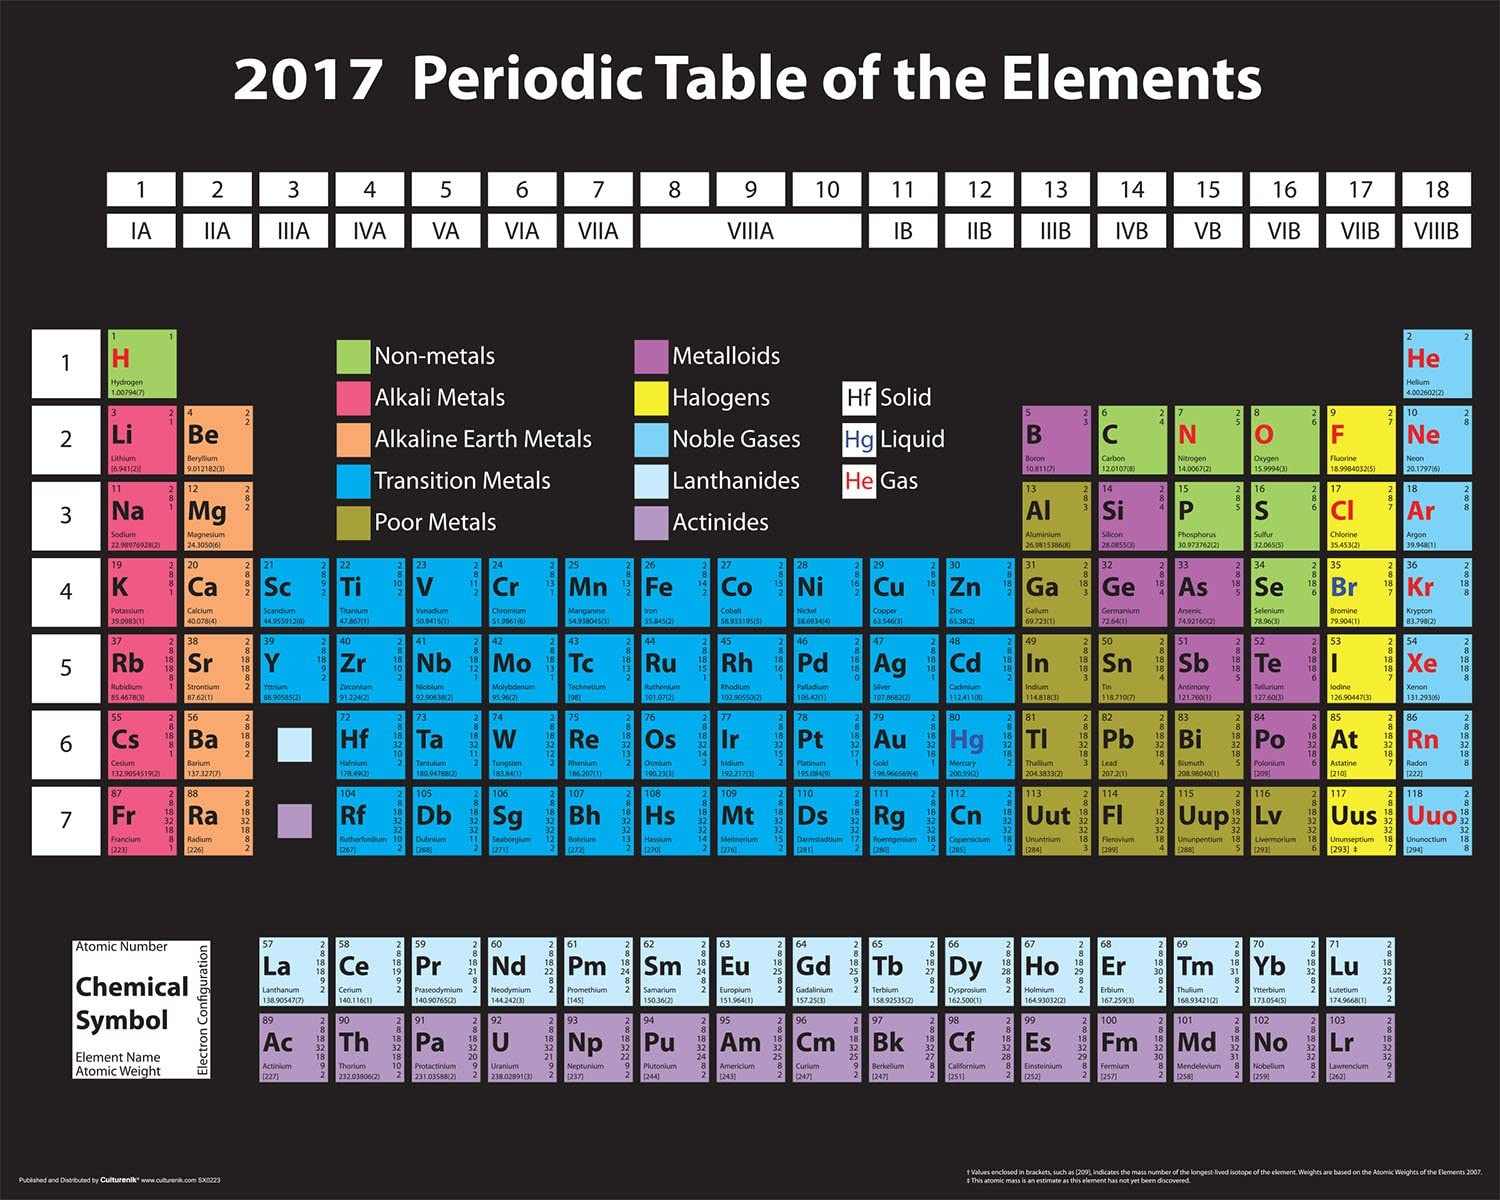 Culturenik Periodic Table of Elements 2017 Decorative Educational Science Classroom Print (Unframed 16x20 Poster)